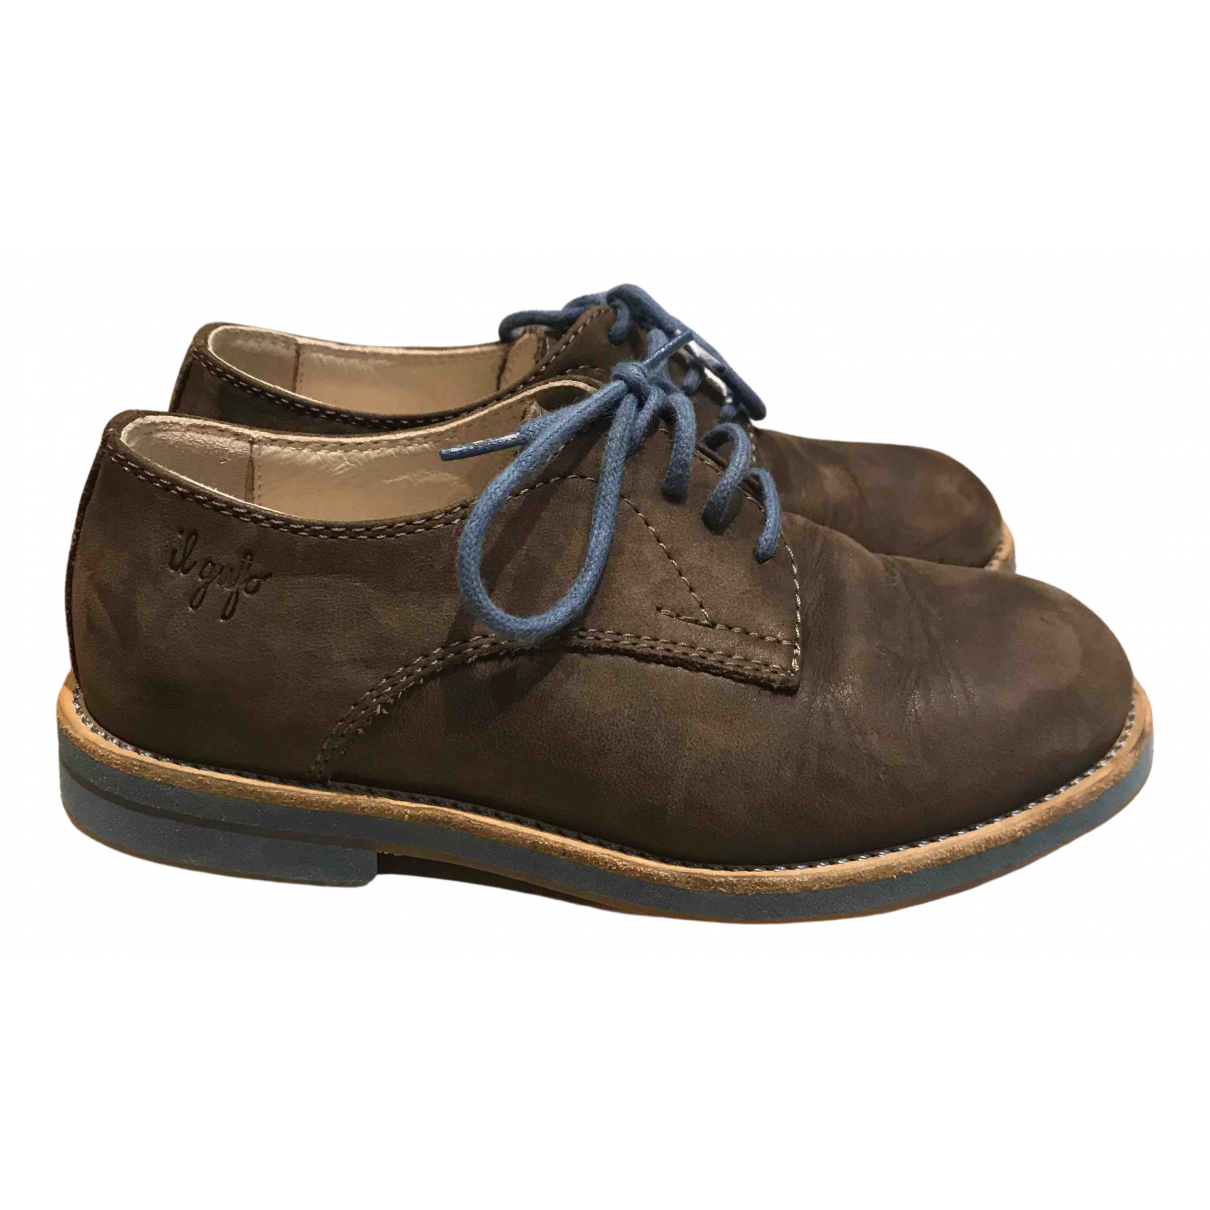 Il Gufo N Brown Leather Lace up boots for Kids 27 FR